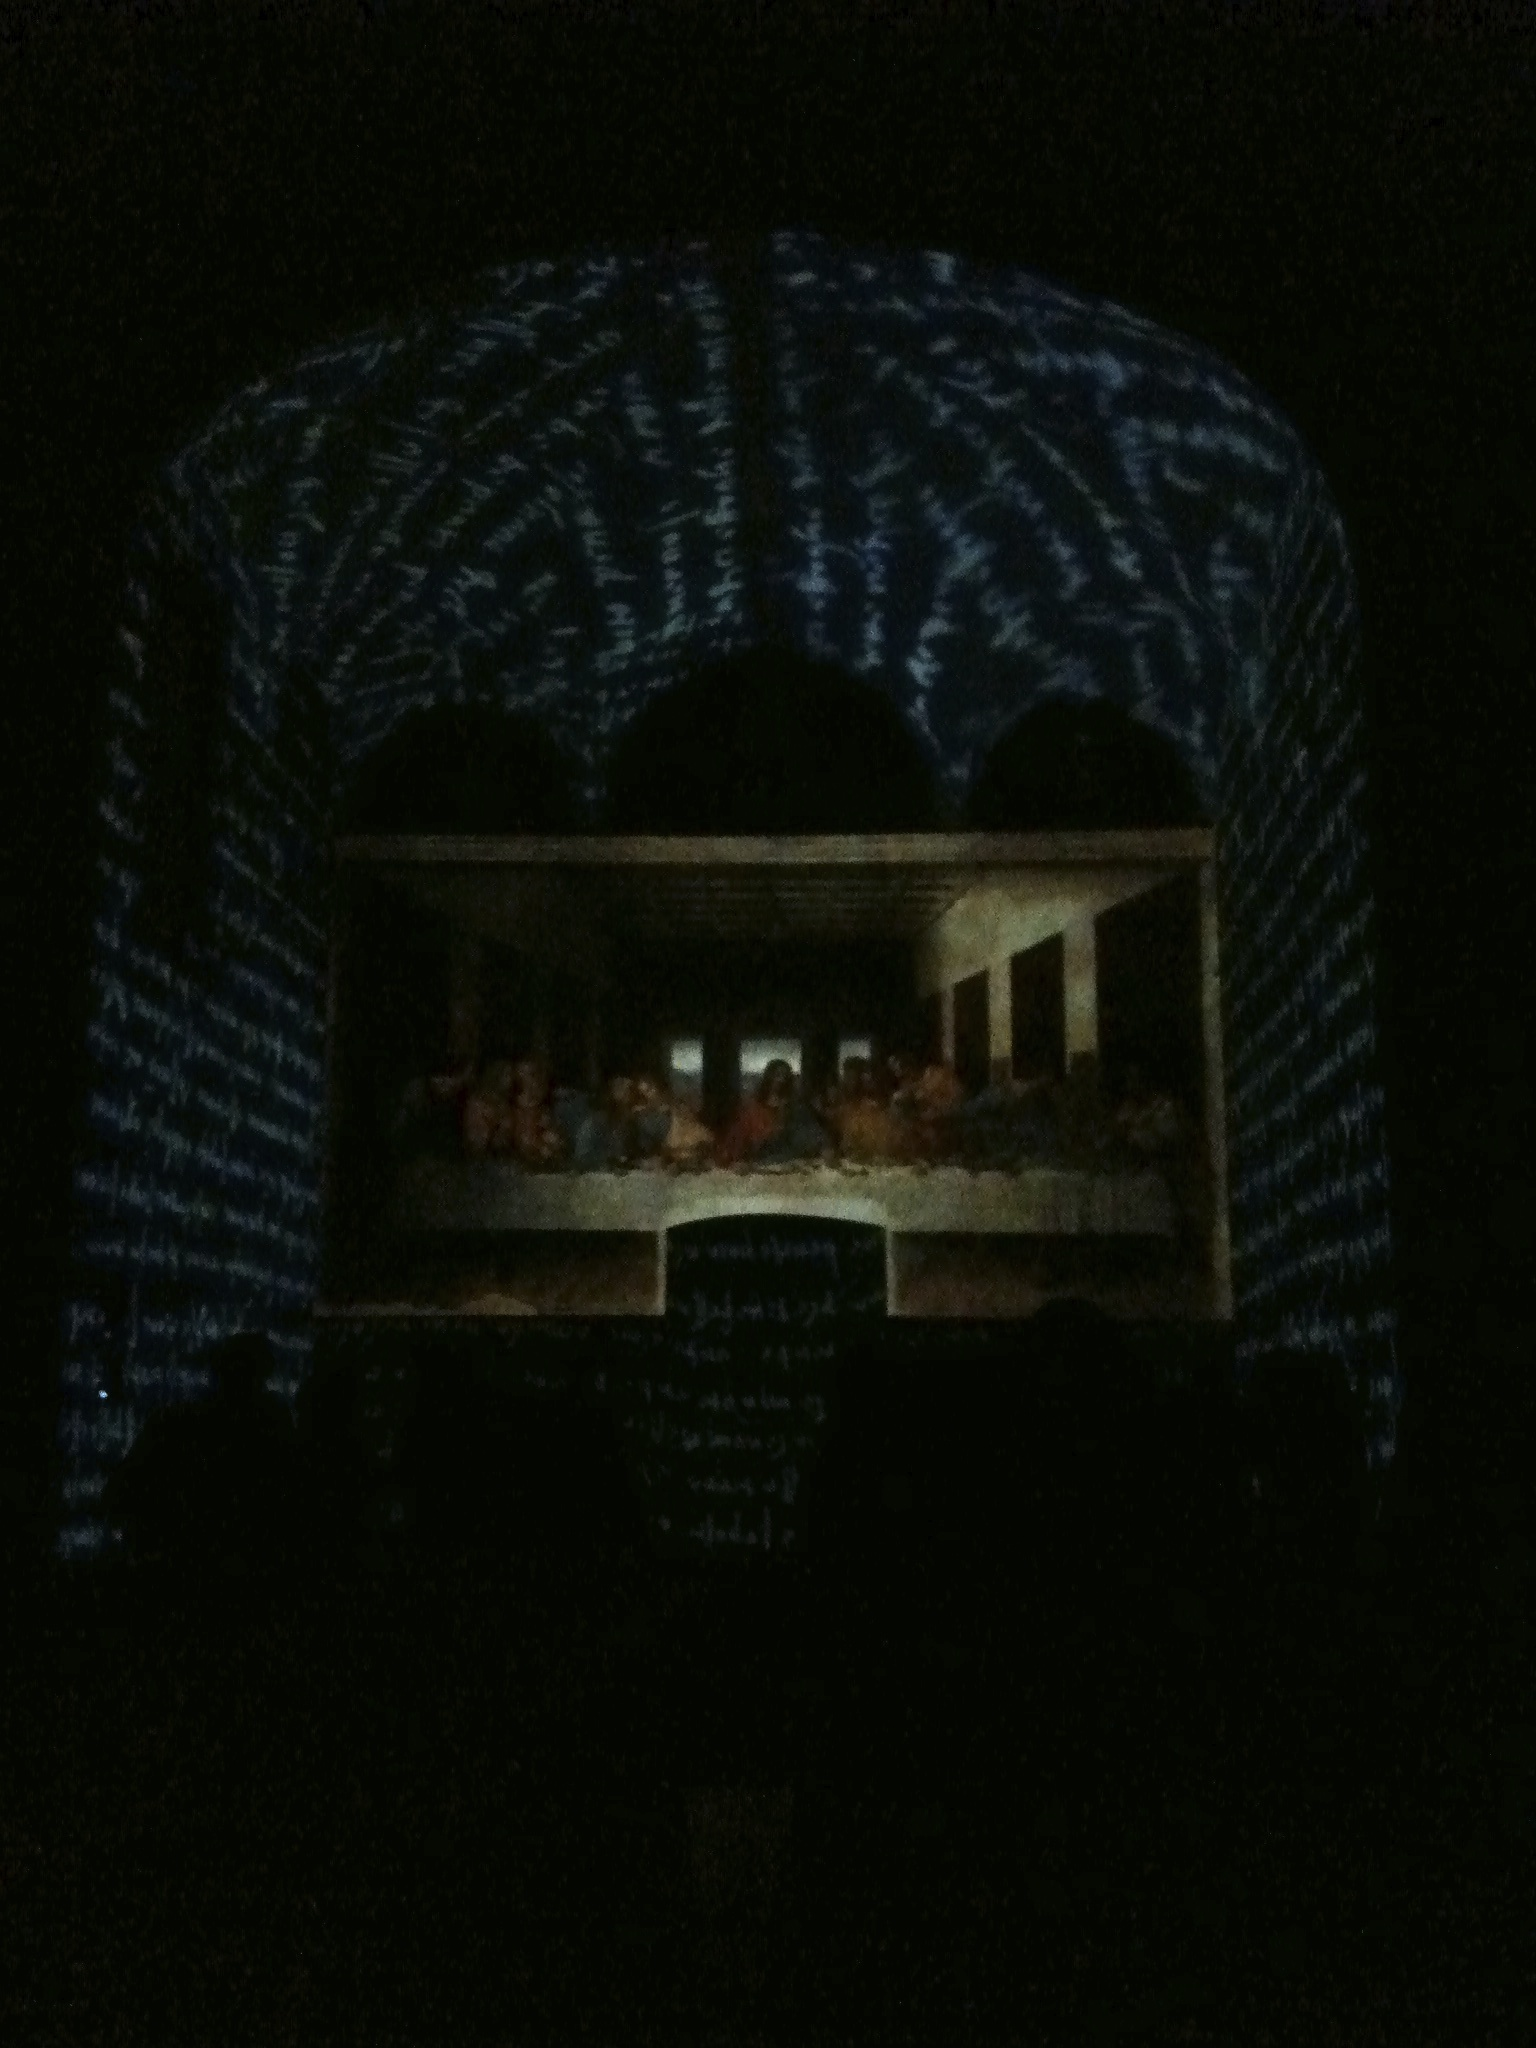 Leonardo's Last Supper: A Vision by Peter Greenaway